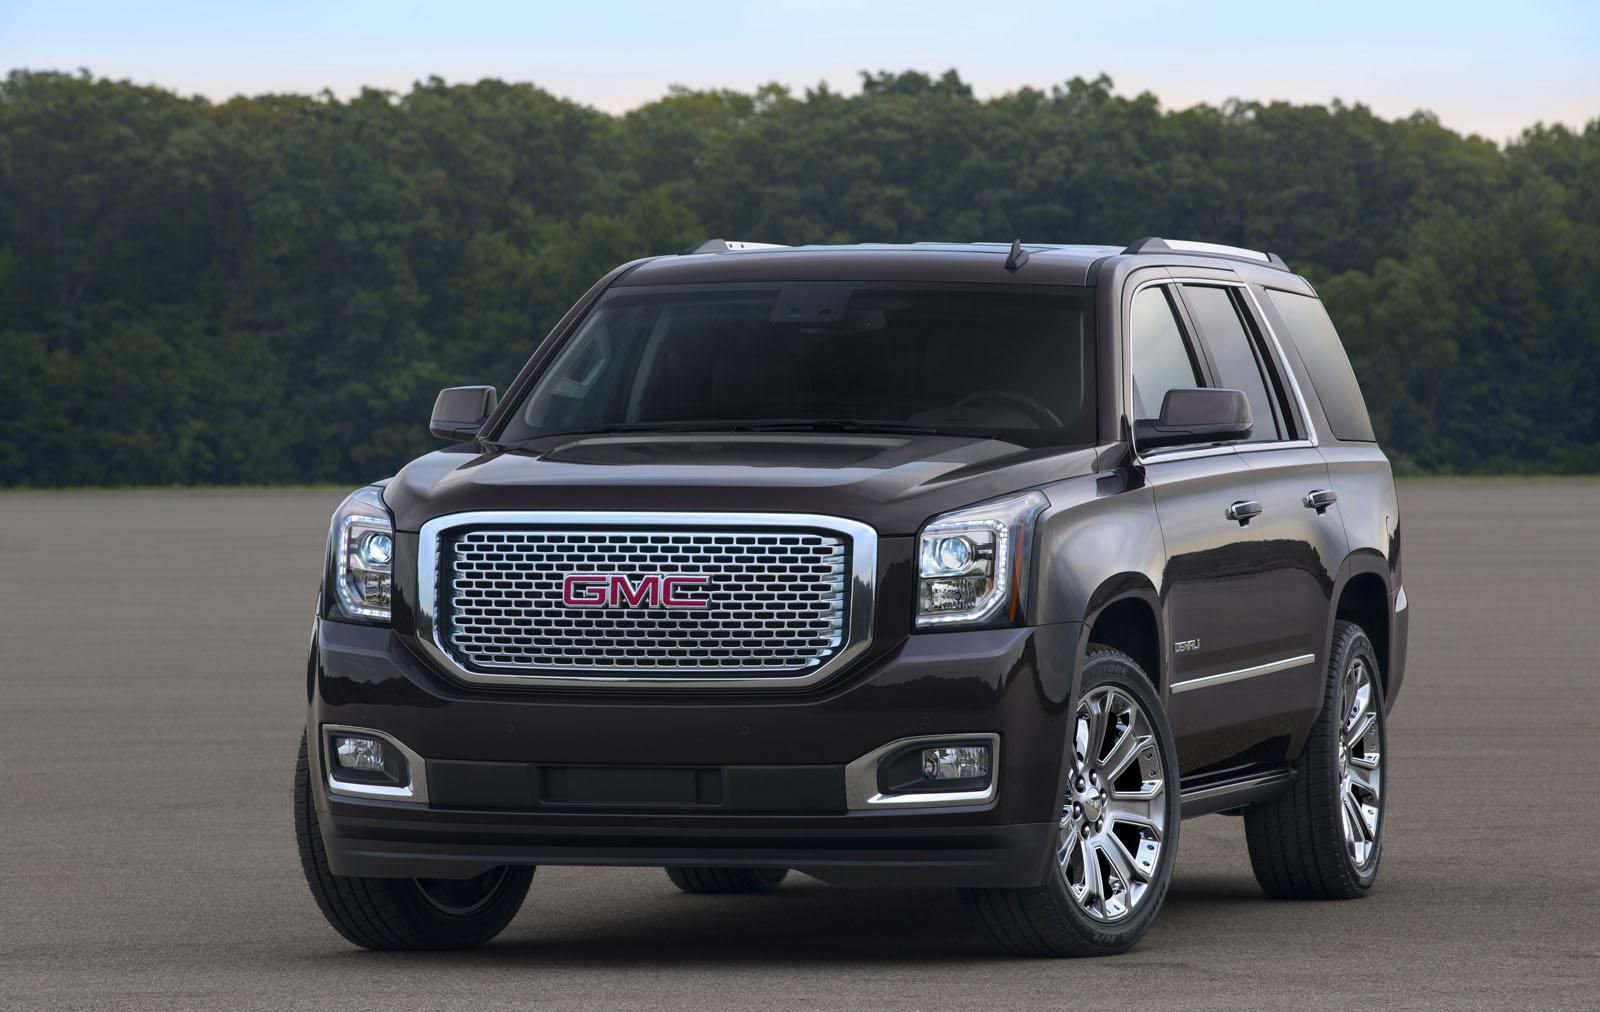 2020 Gmc Yukon Denali Concept Price And Release Date Rumor